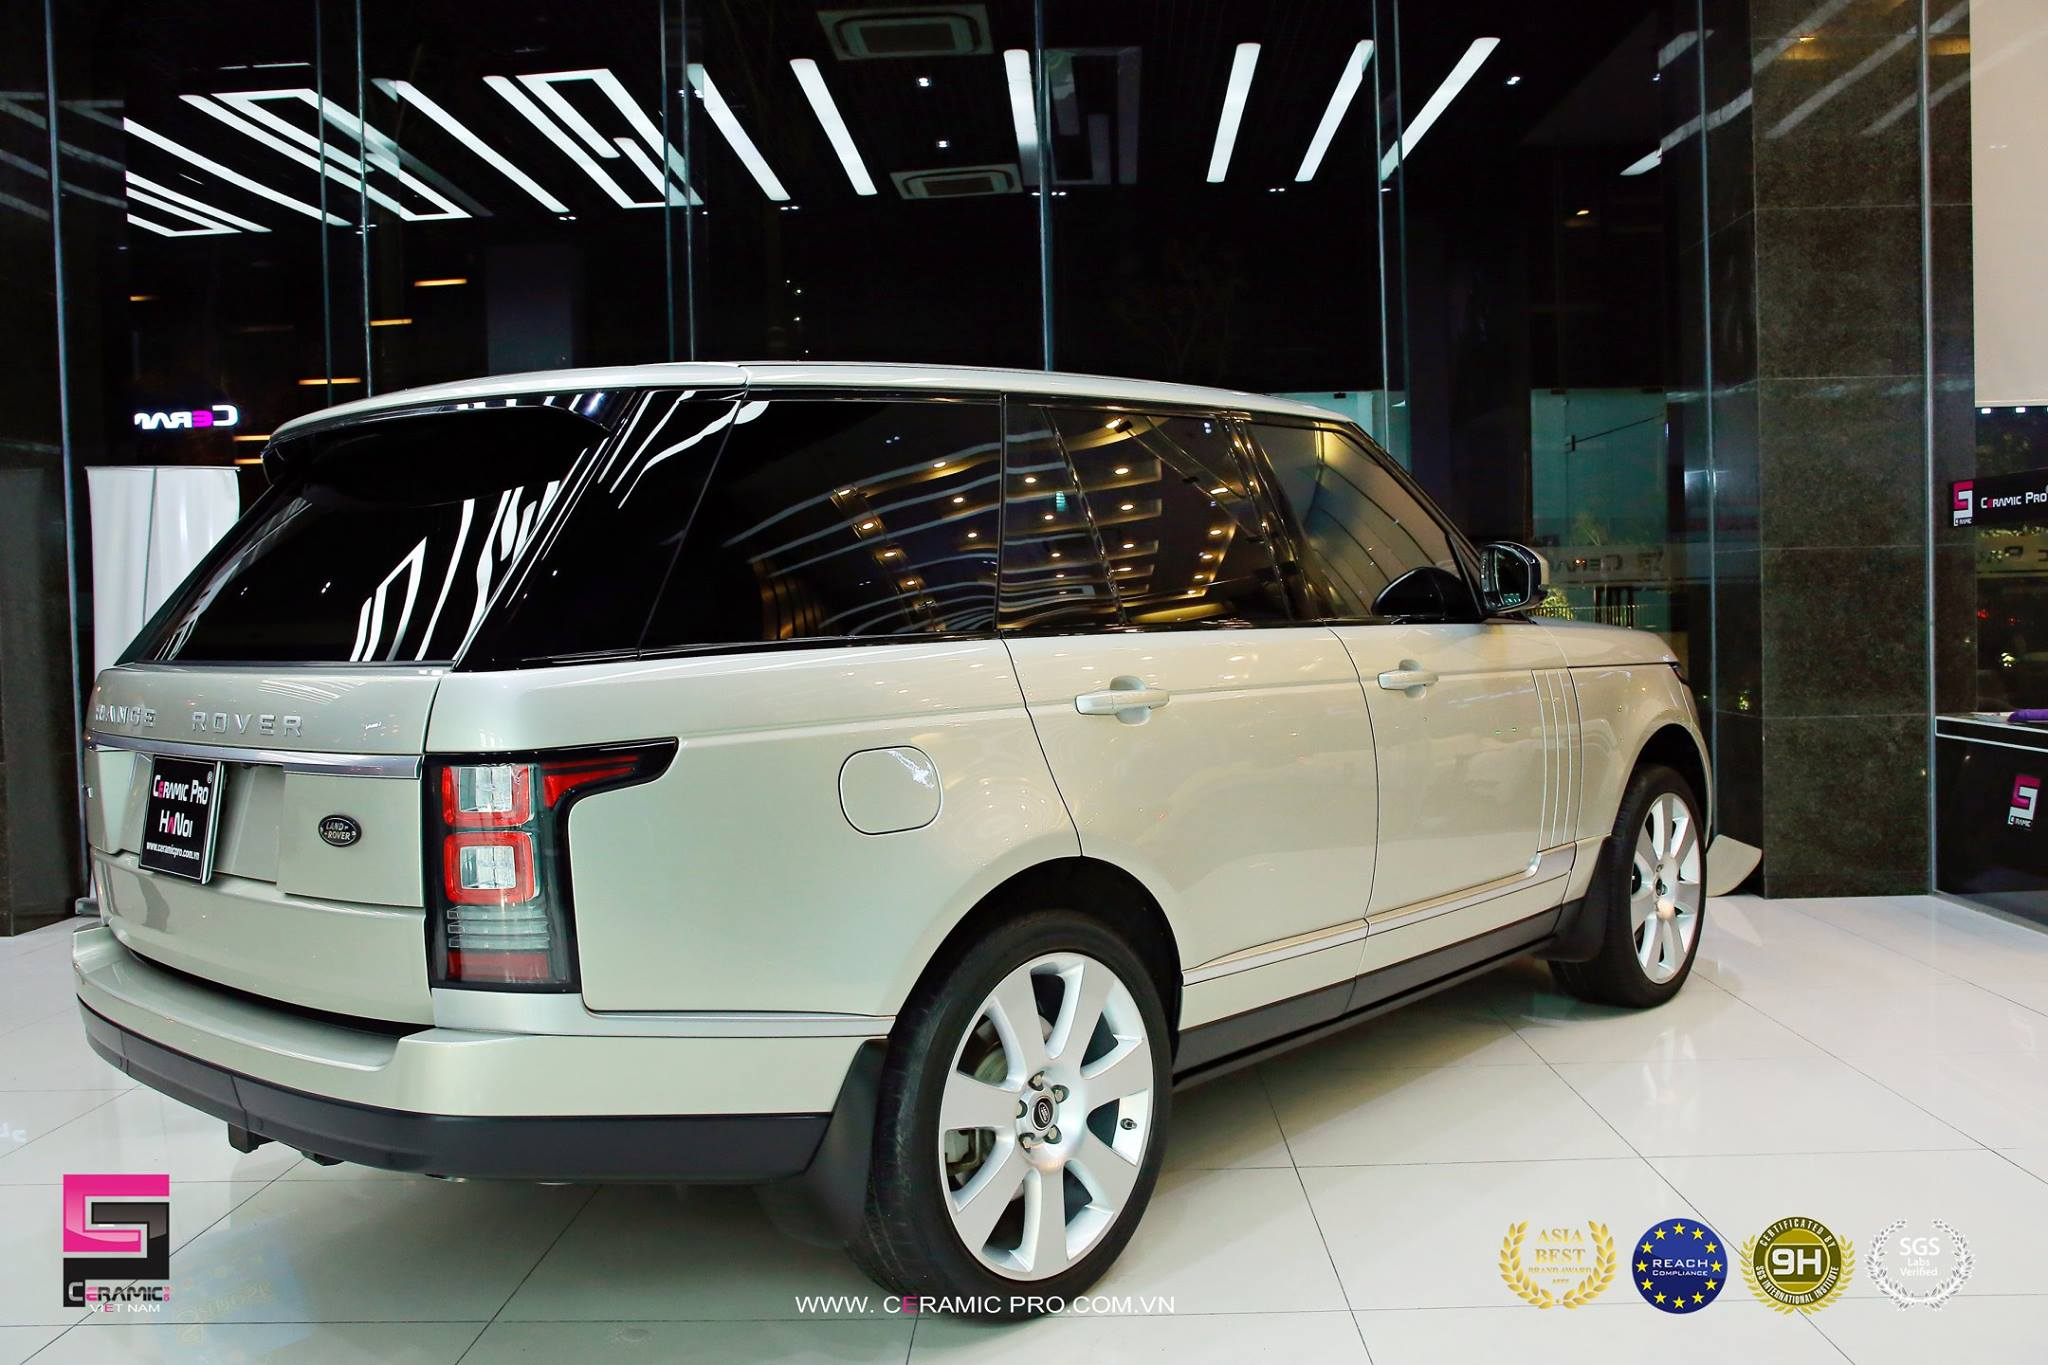 Range Rover Supercharged PLATINUM (10 lớp phủ